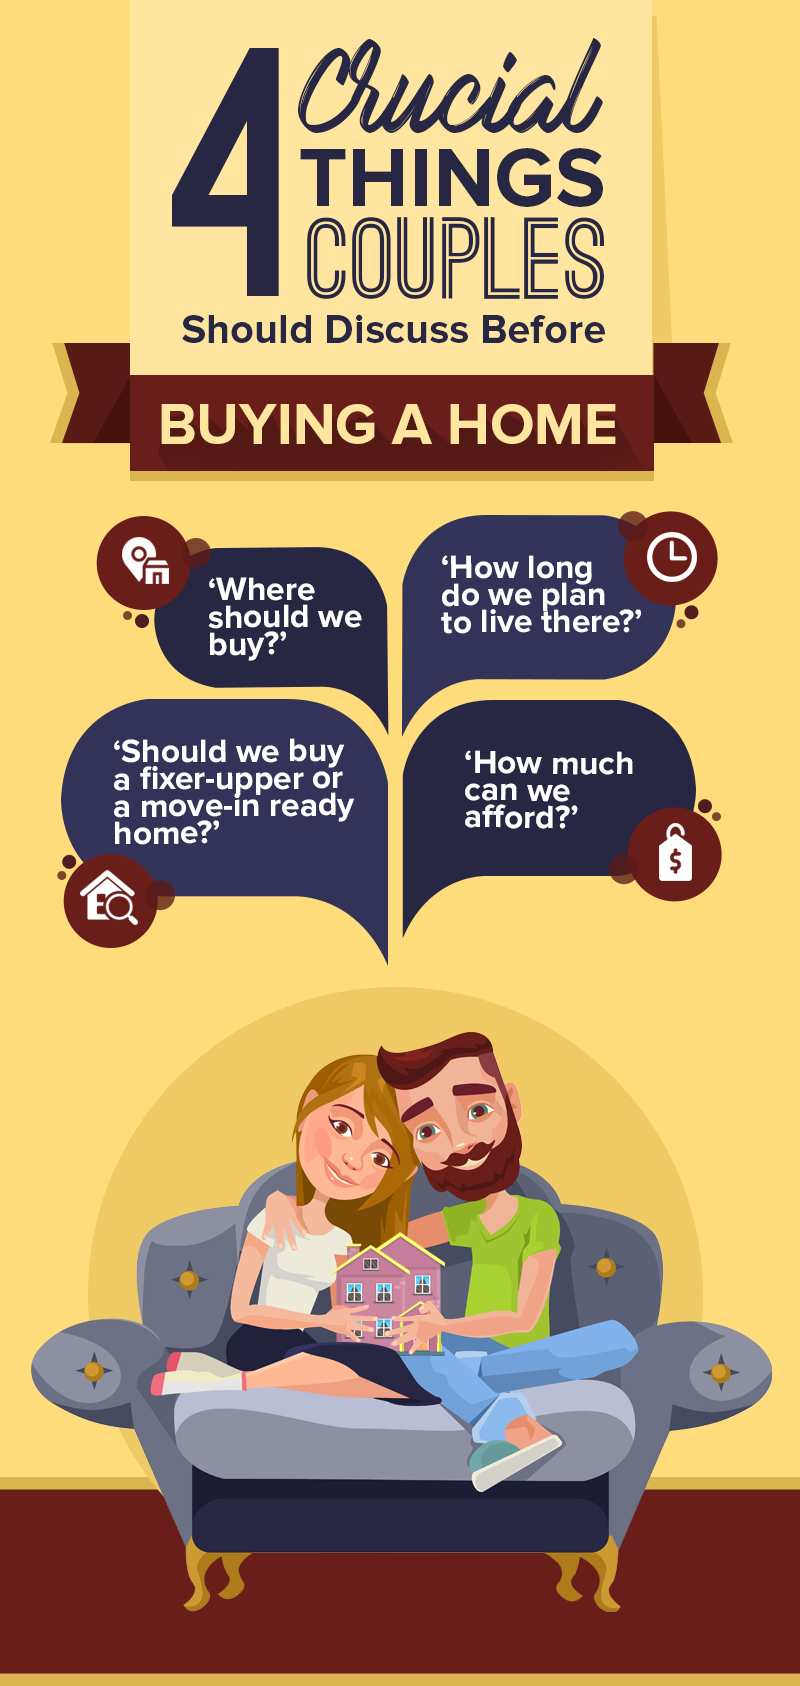 4 Crucial Things Couples Should Discuss Before Buying A Home.jpg